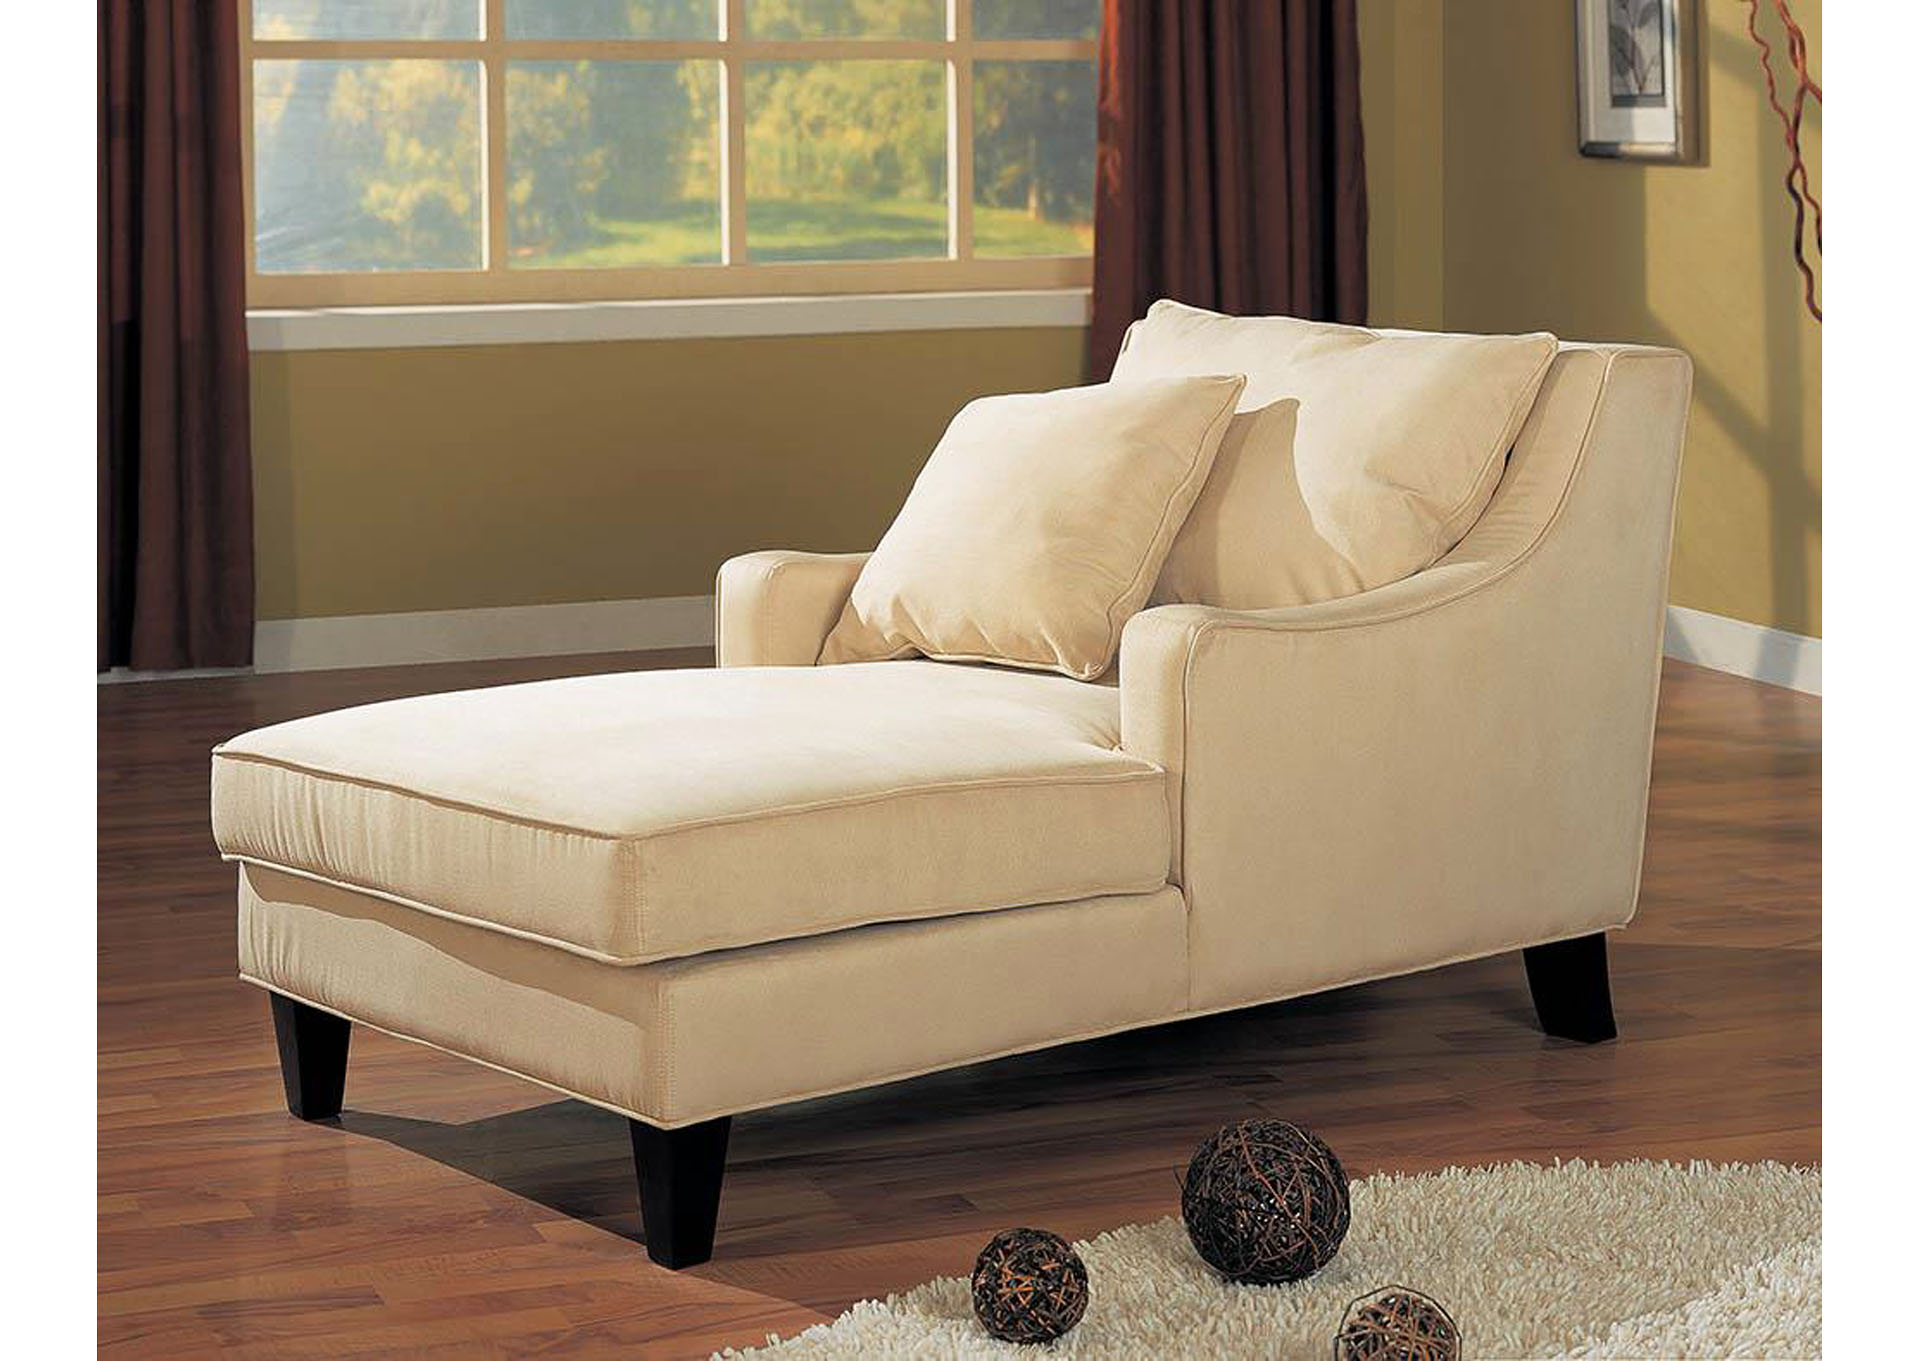 squan furniture beige cappuccino chaise. Black Bedroom Furniture Sets. Home Design Ideas